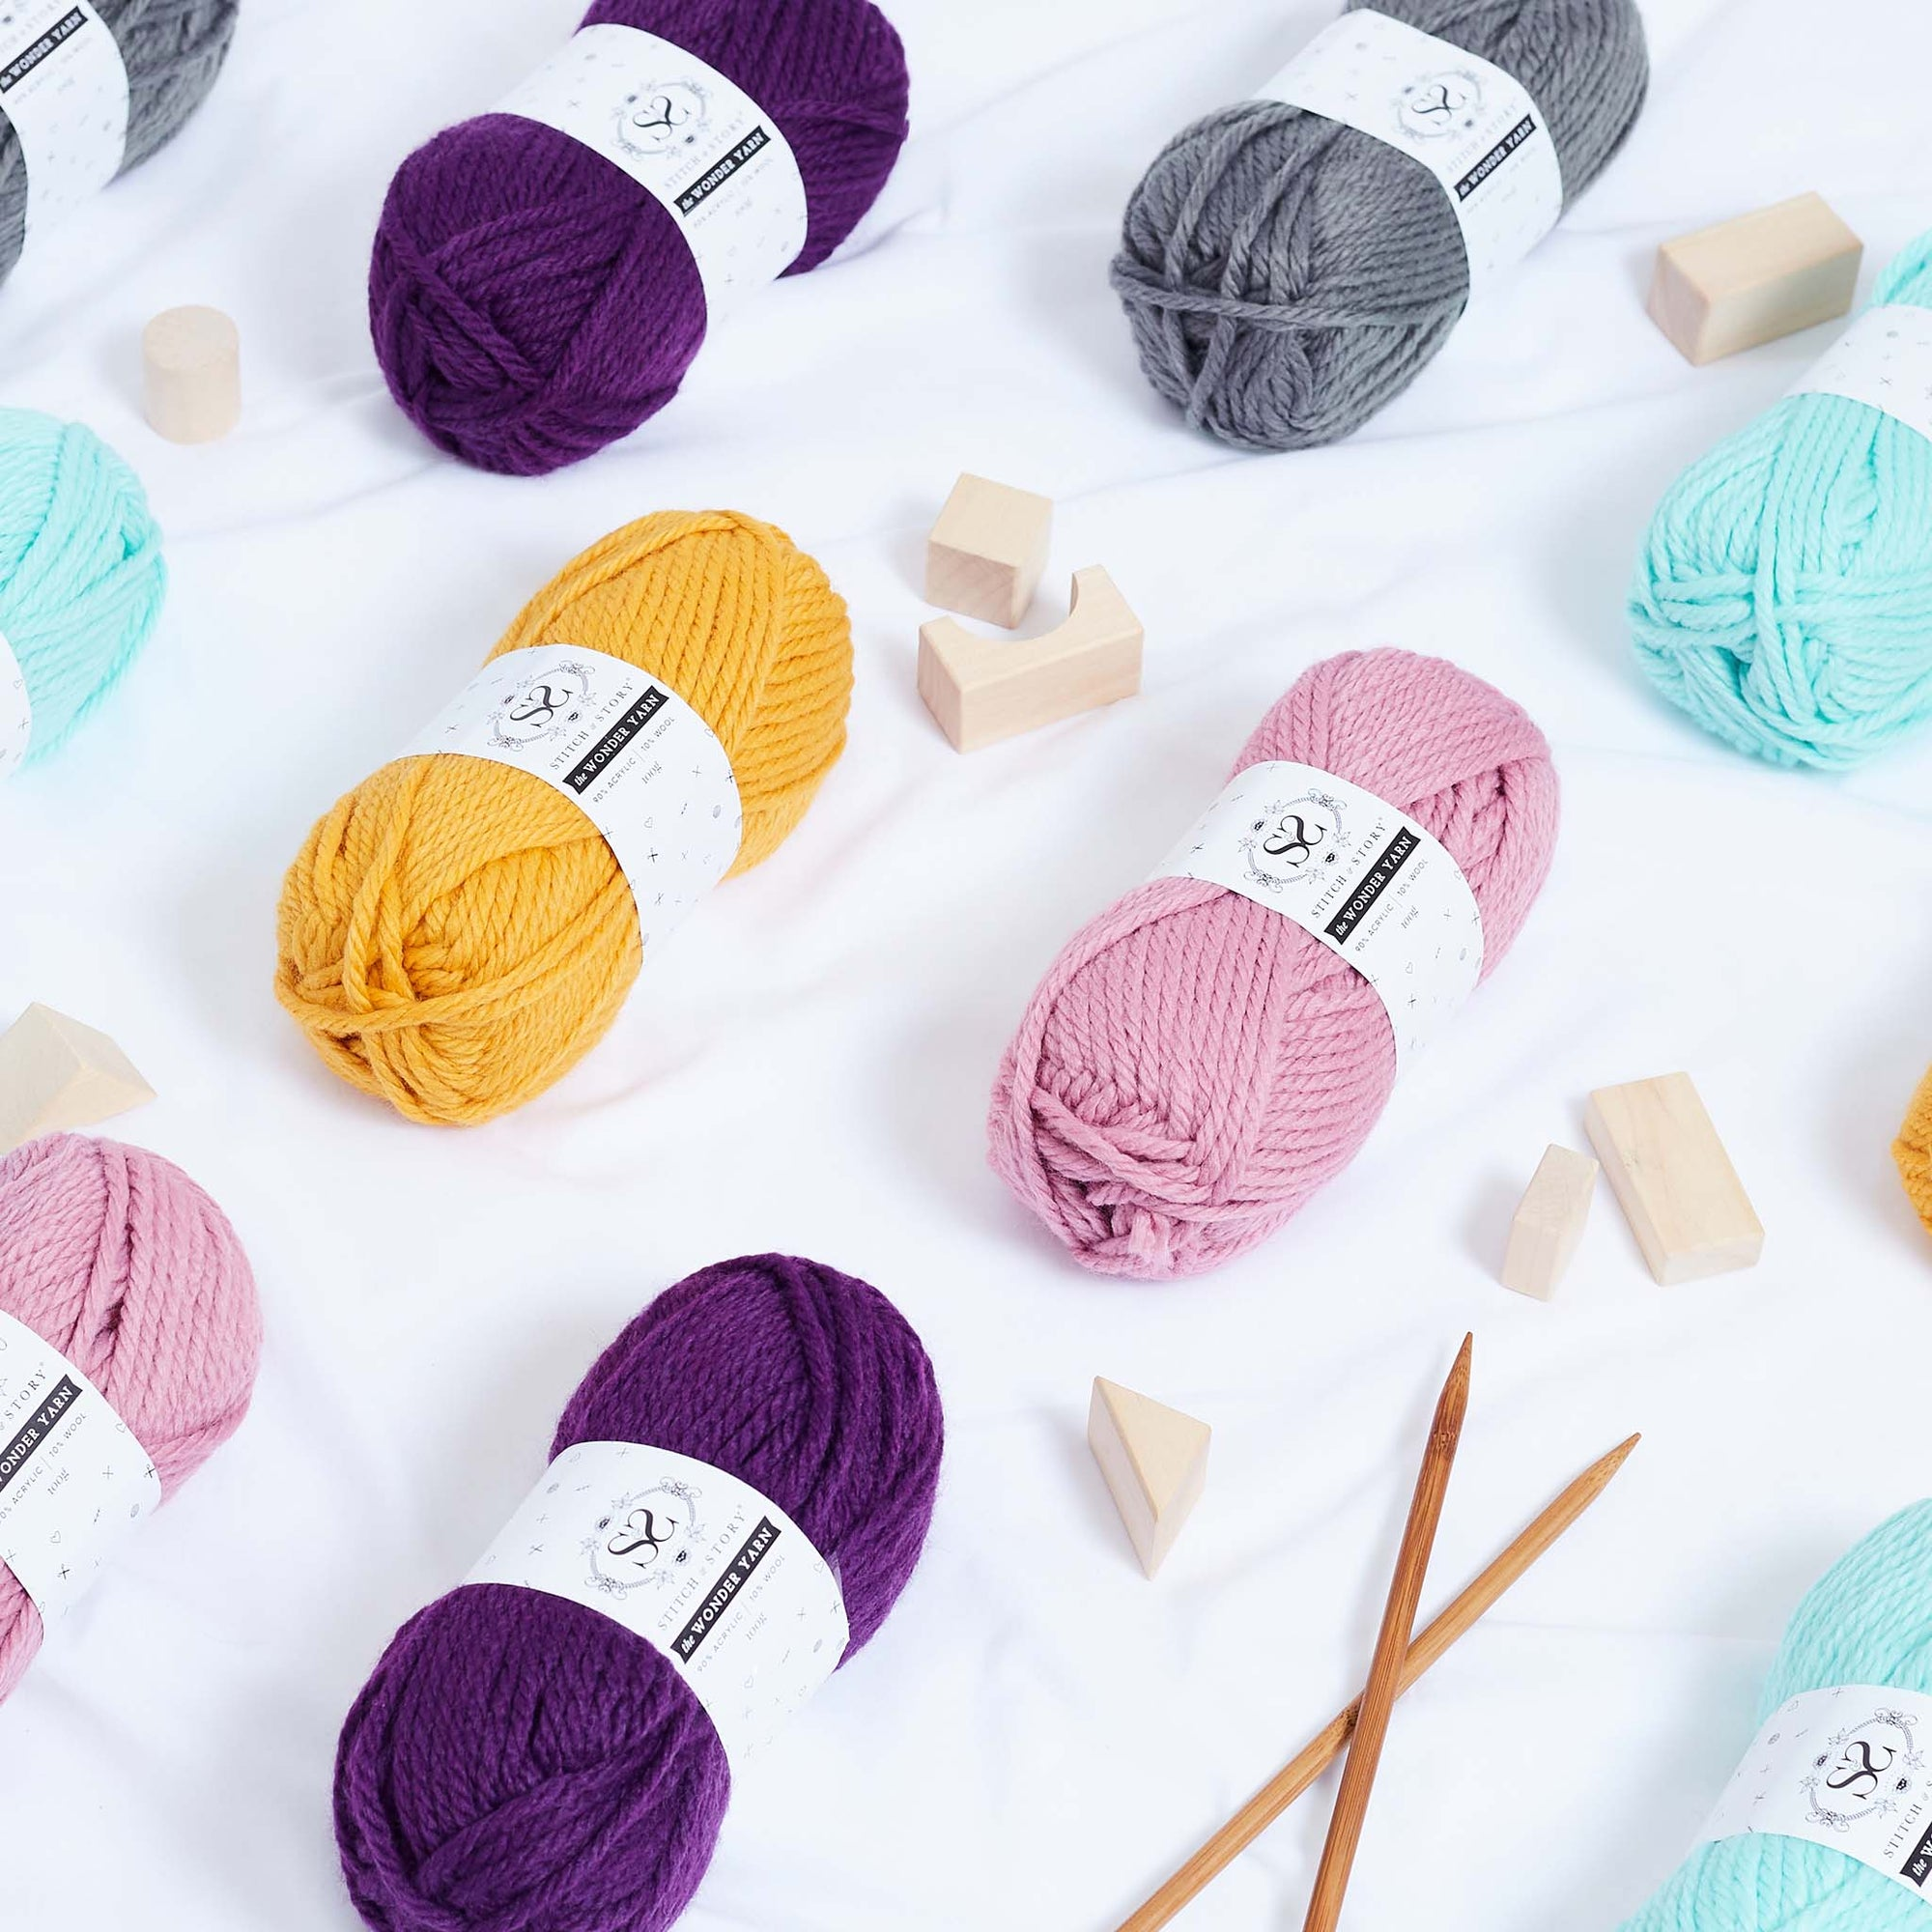 The Wonder Yarn 100g balls